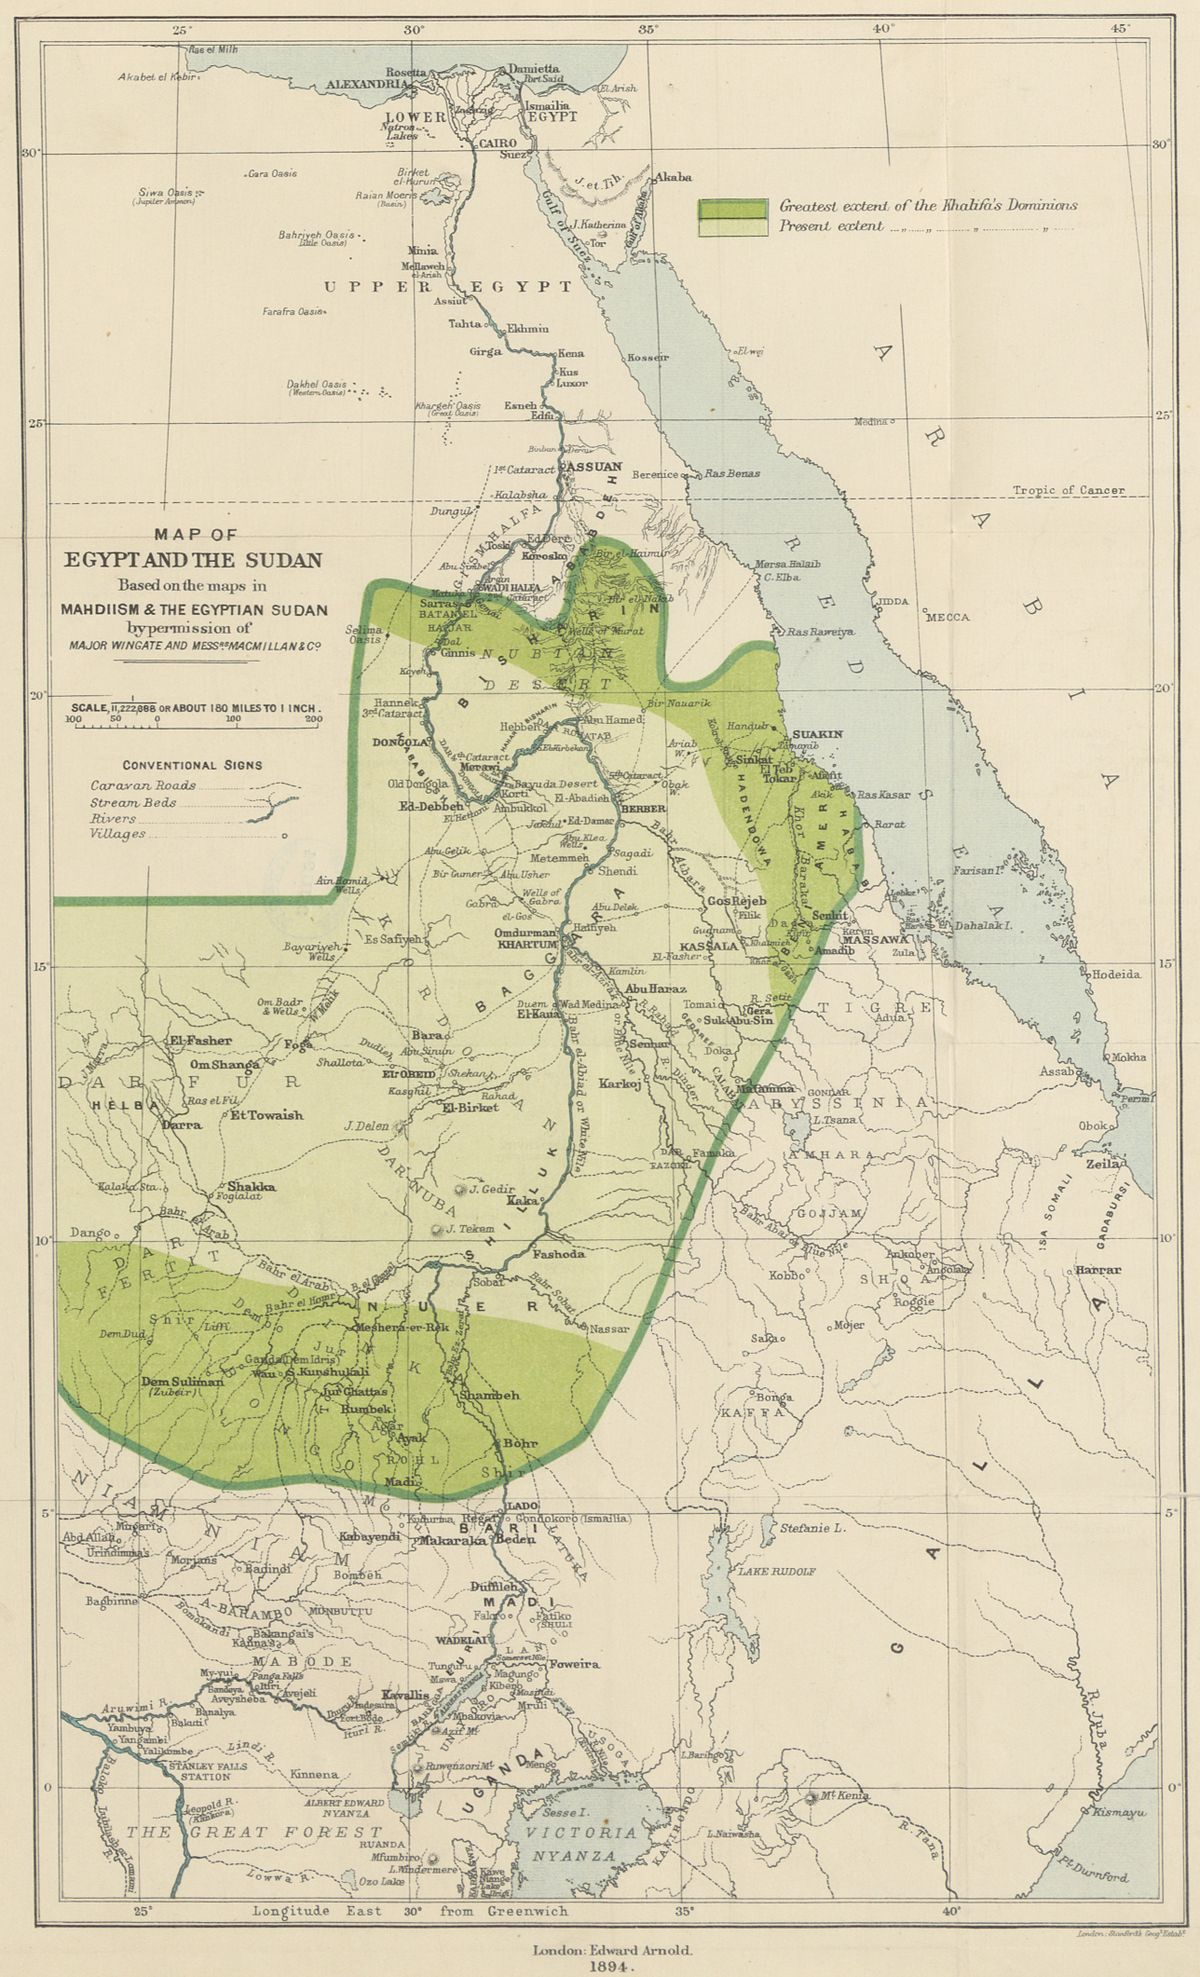 mahdist state in sudan Mahdist sudan was an unrecognized state that attempted unsuccessfully to break egyptian rule in the sudan developments in sudan during the late 19th century cannot.